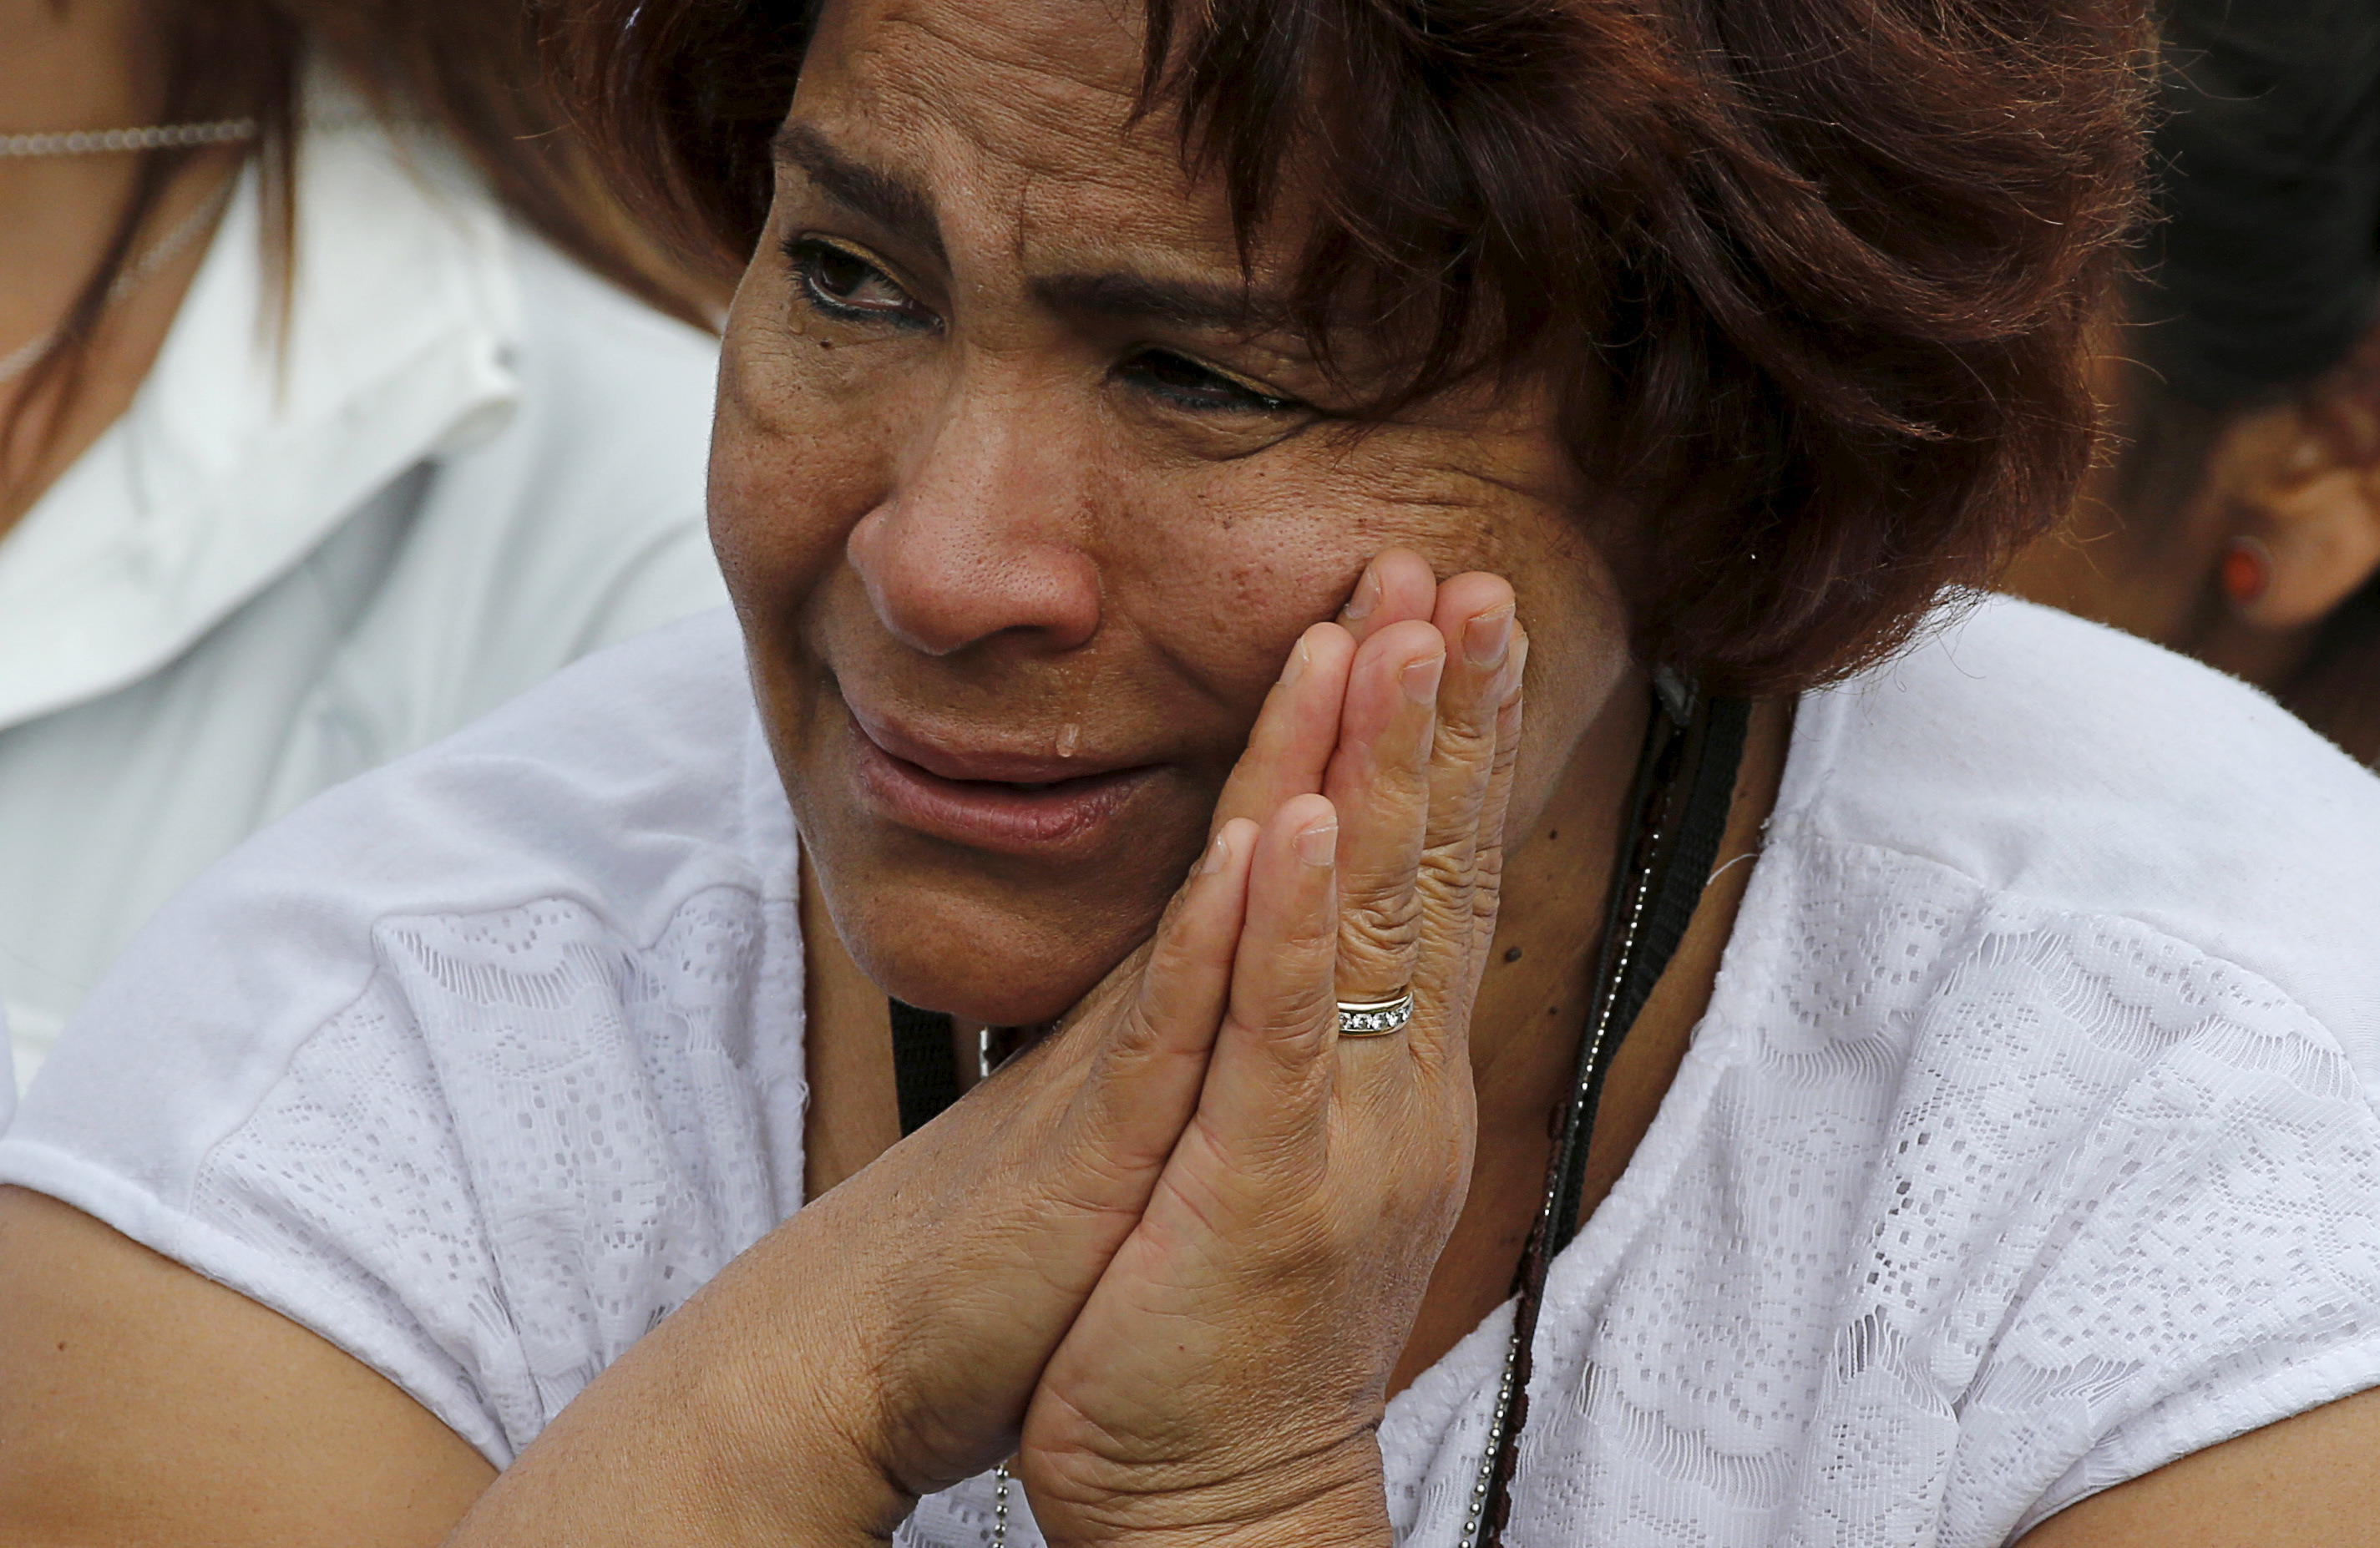 A worshipper has tears running down her face as she stands on Independence Mall in Philadelphia watching a television feed of Pope Francis celebrating a mass nearby at the Cathedral Basilica of Saints Peter and Paul in Philadelphia, Pennsylvania September 26, 2015.   REUTERS/Jim Bourg - RTX1SLYG